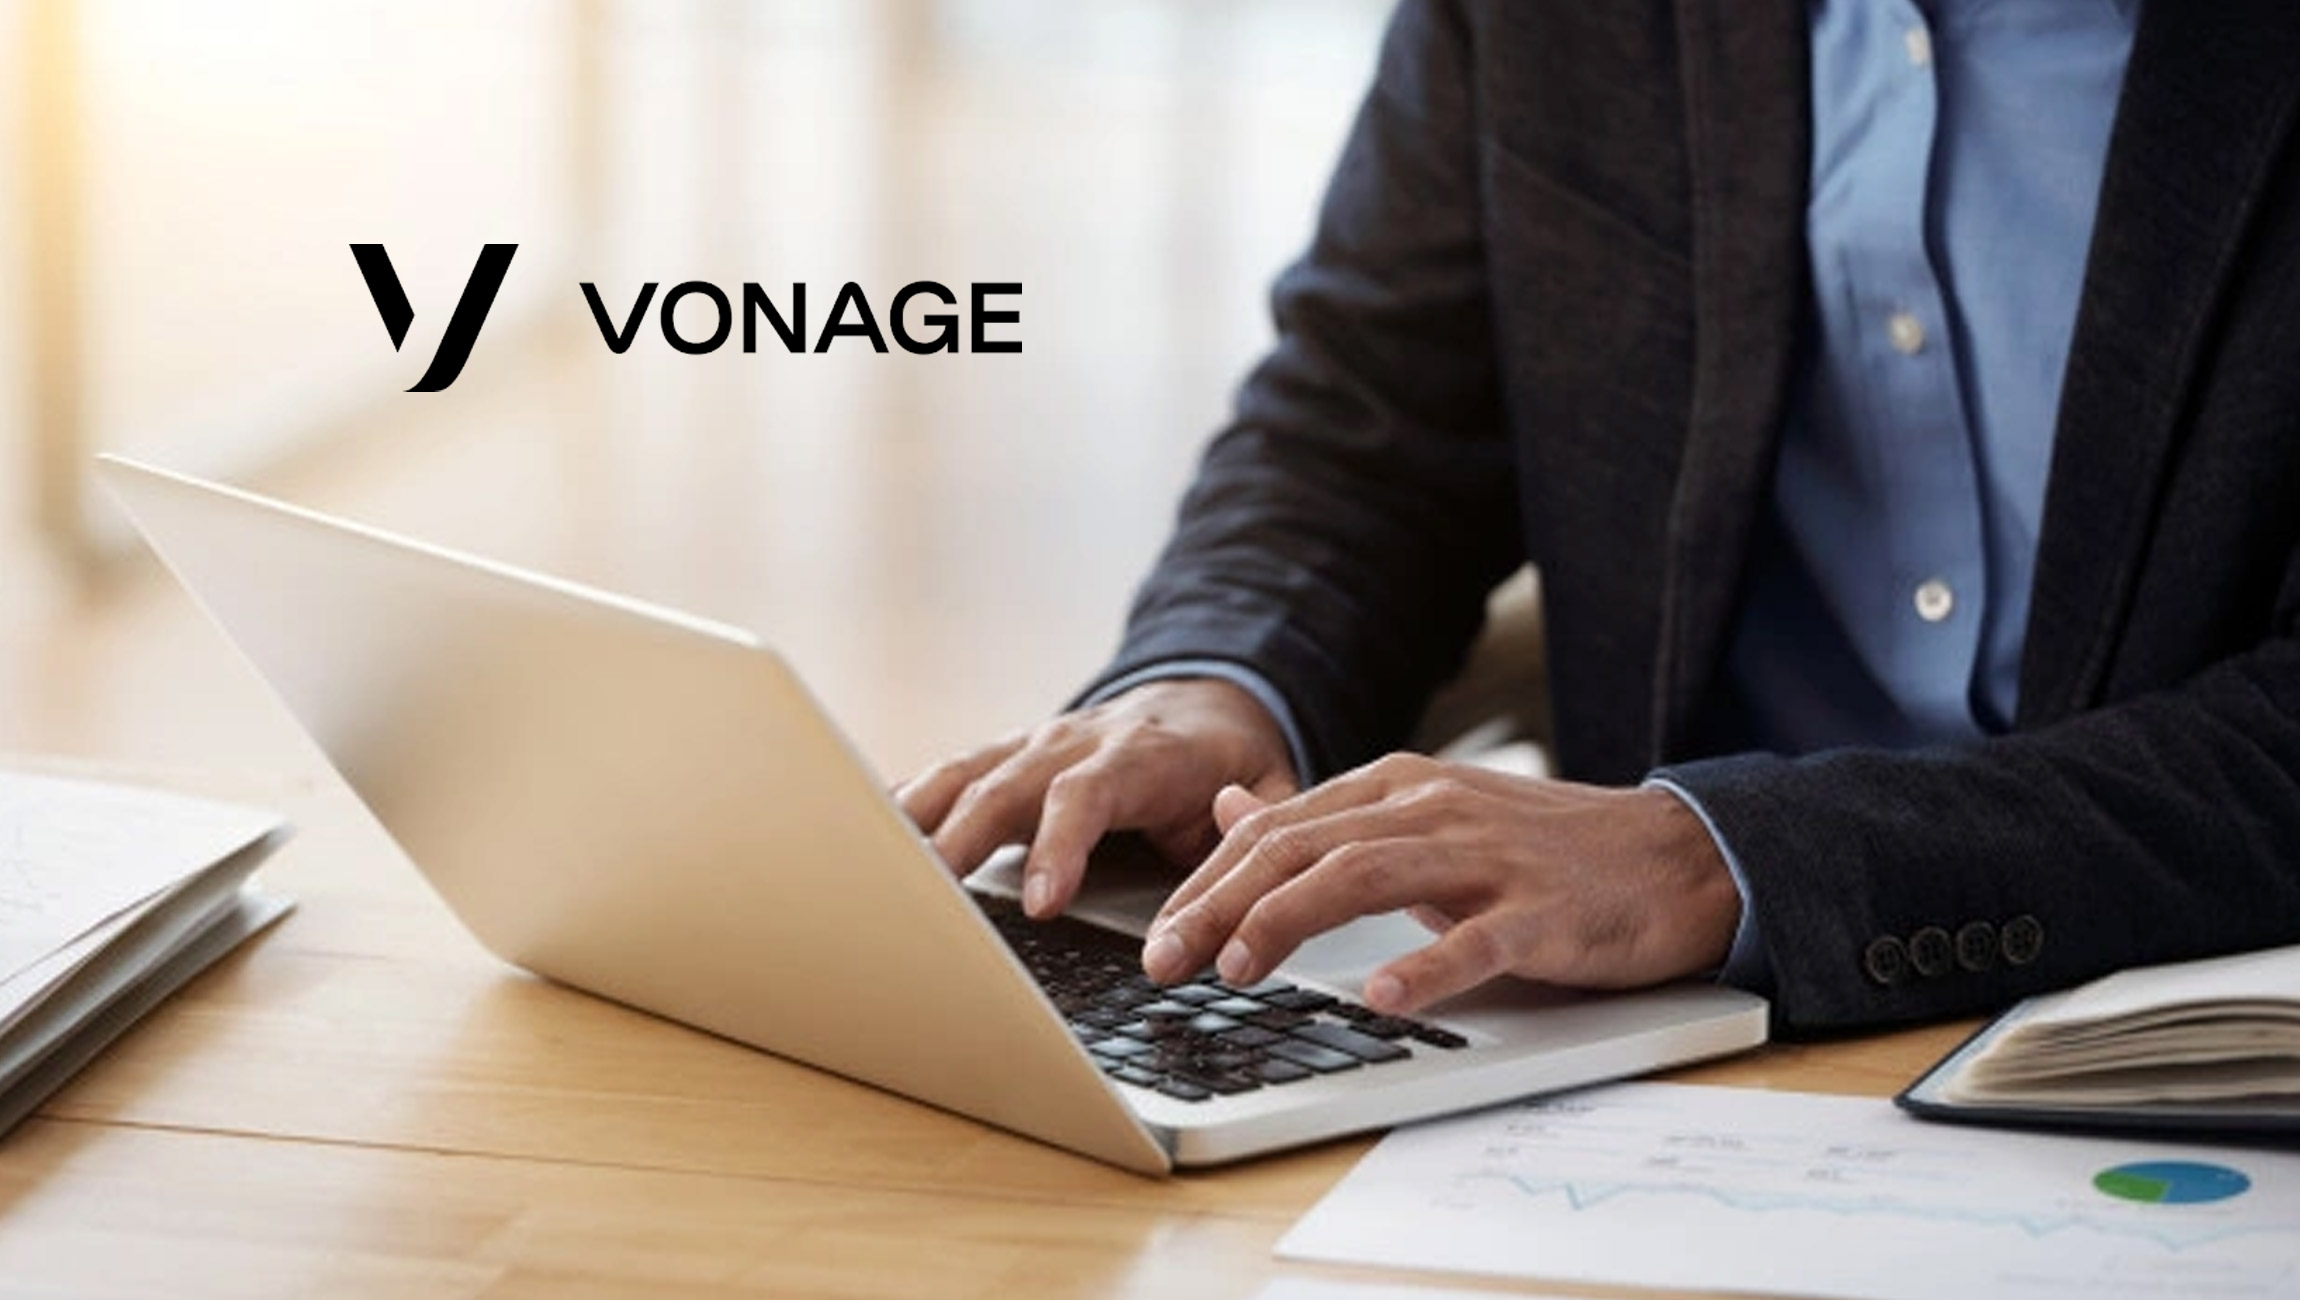 Vonage to Present on the Future of Communications Technology at Enterprise Connect 2021